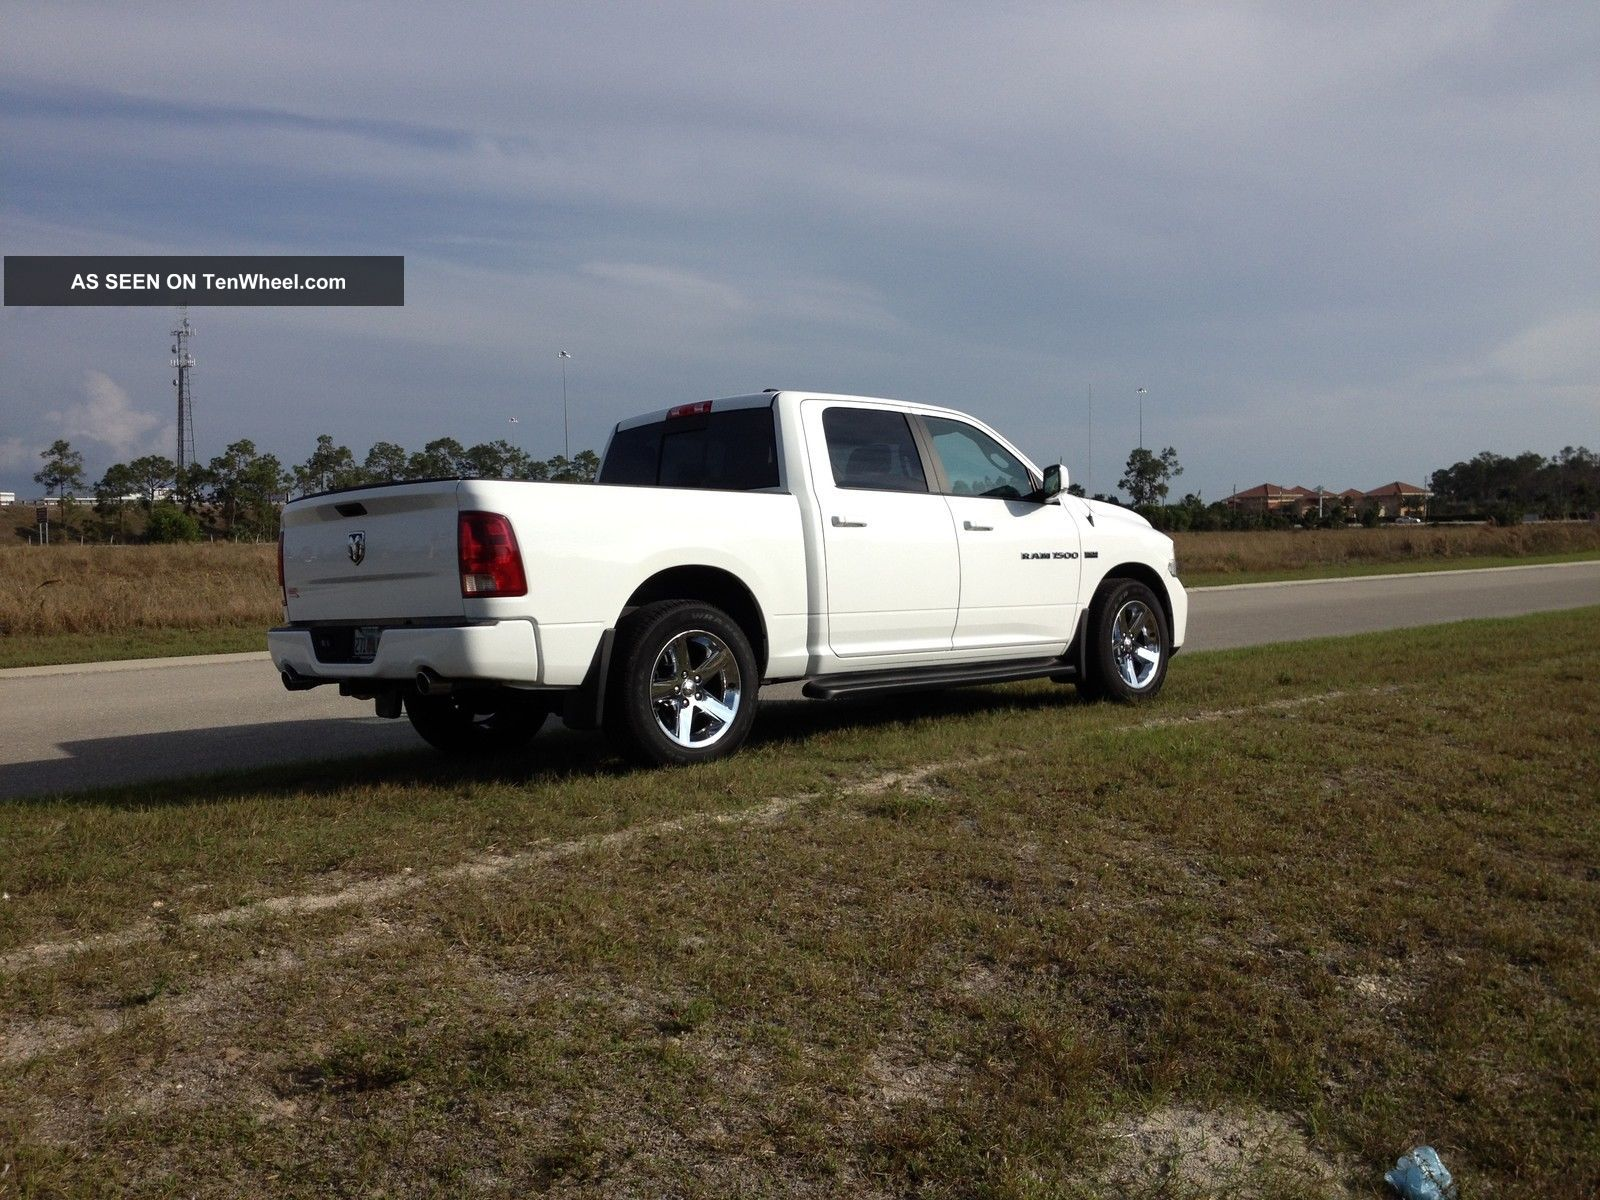 2011 Dodge Ram 1500 4x2 Sport Crew Cab Pick Up Truck